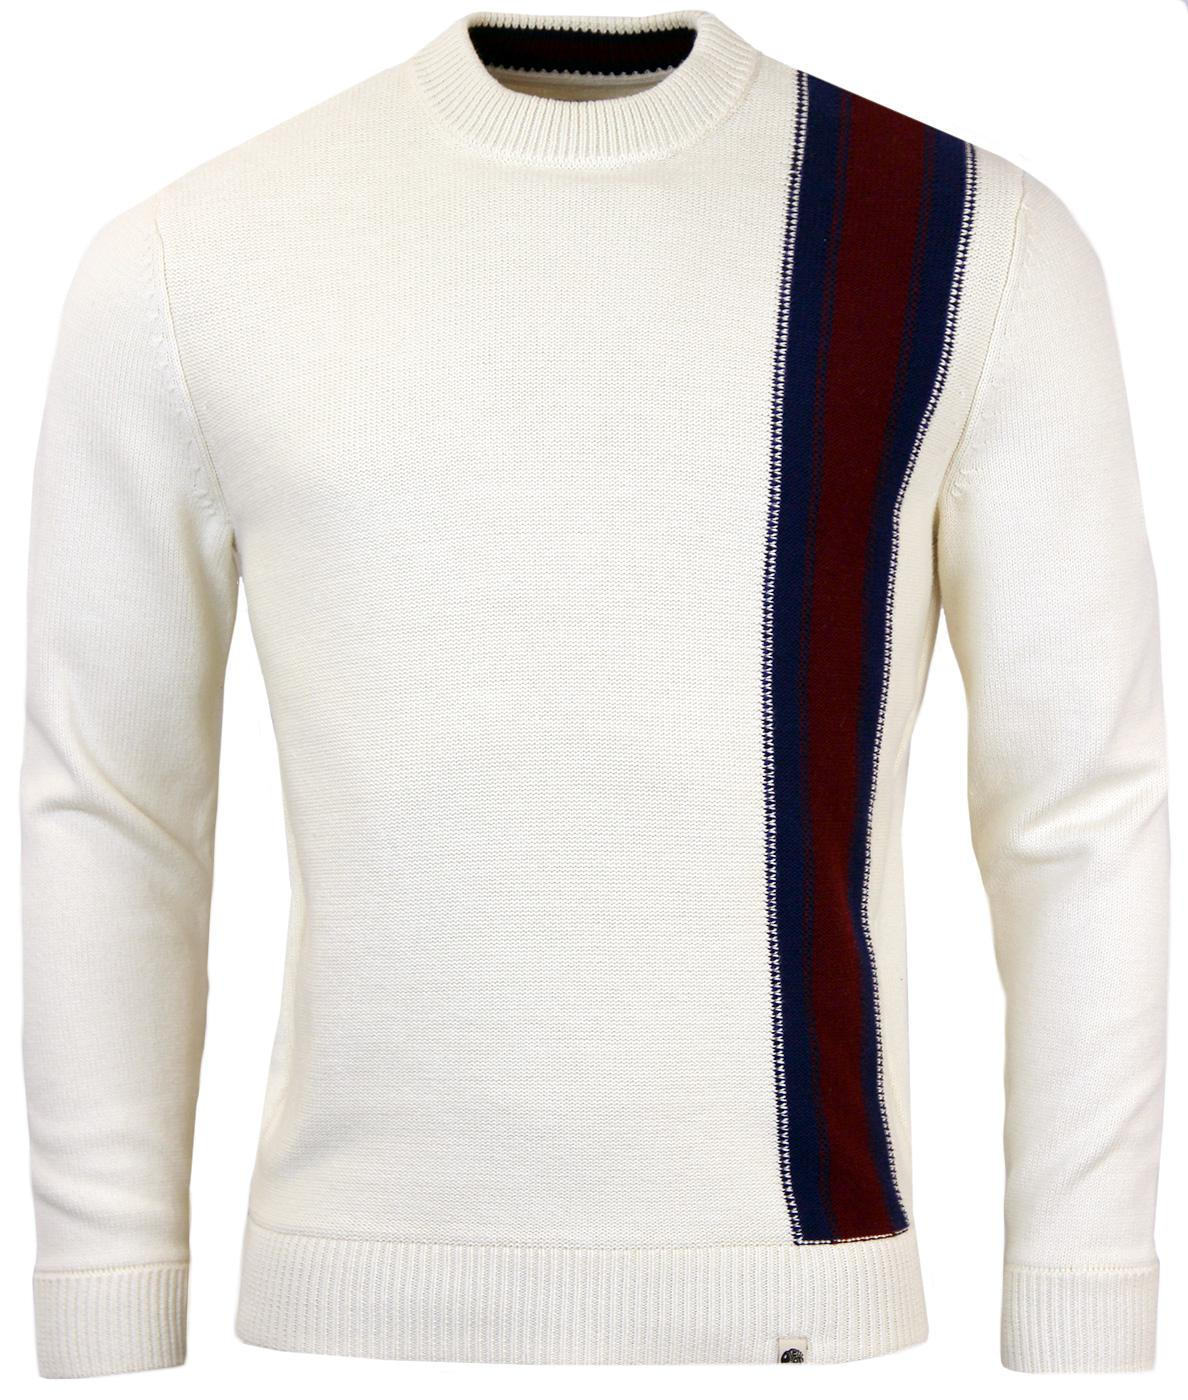 Sherbourne PRETTY GREEN Mock Turtle Neck Jumper